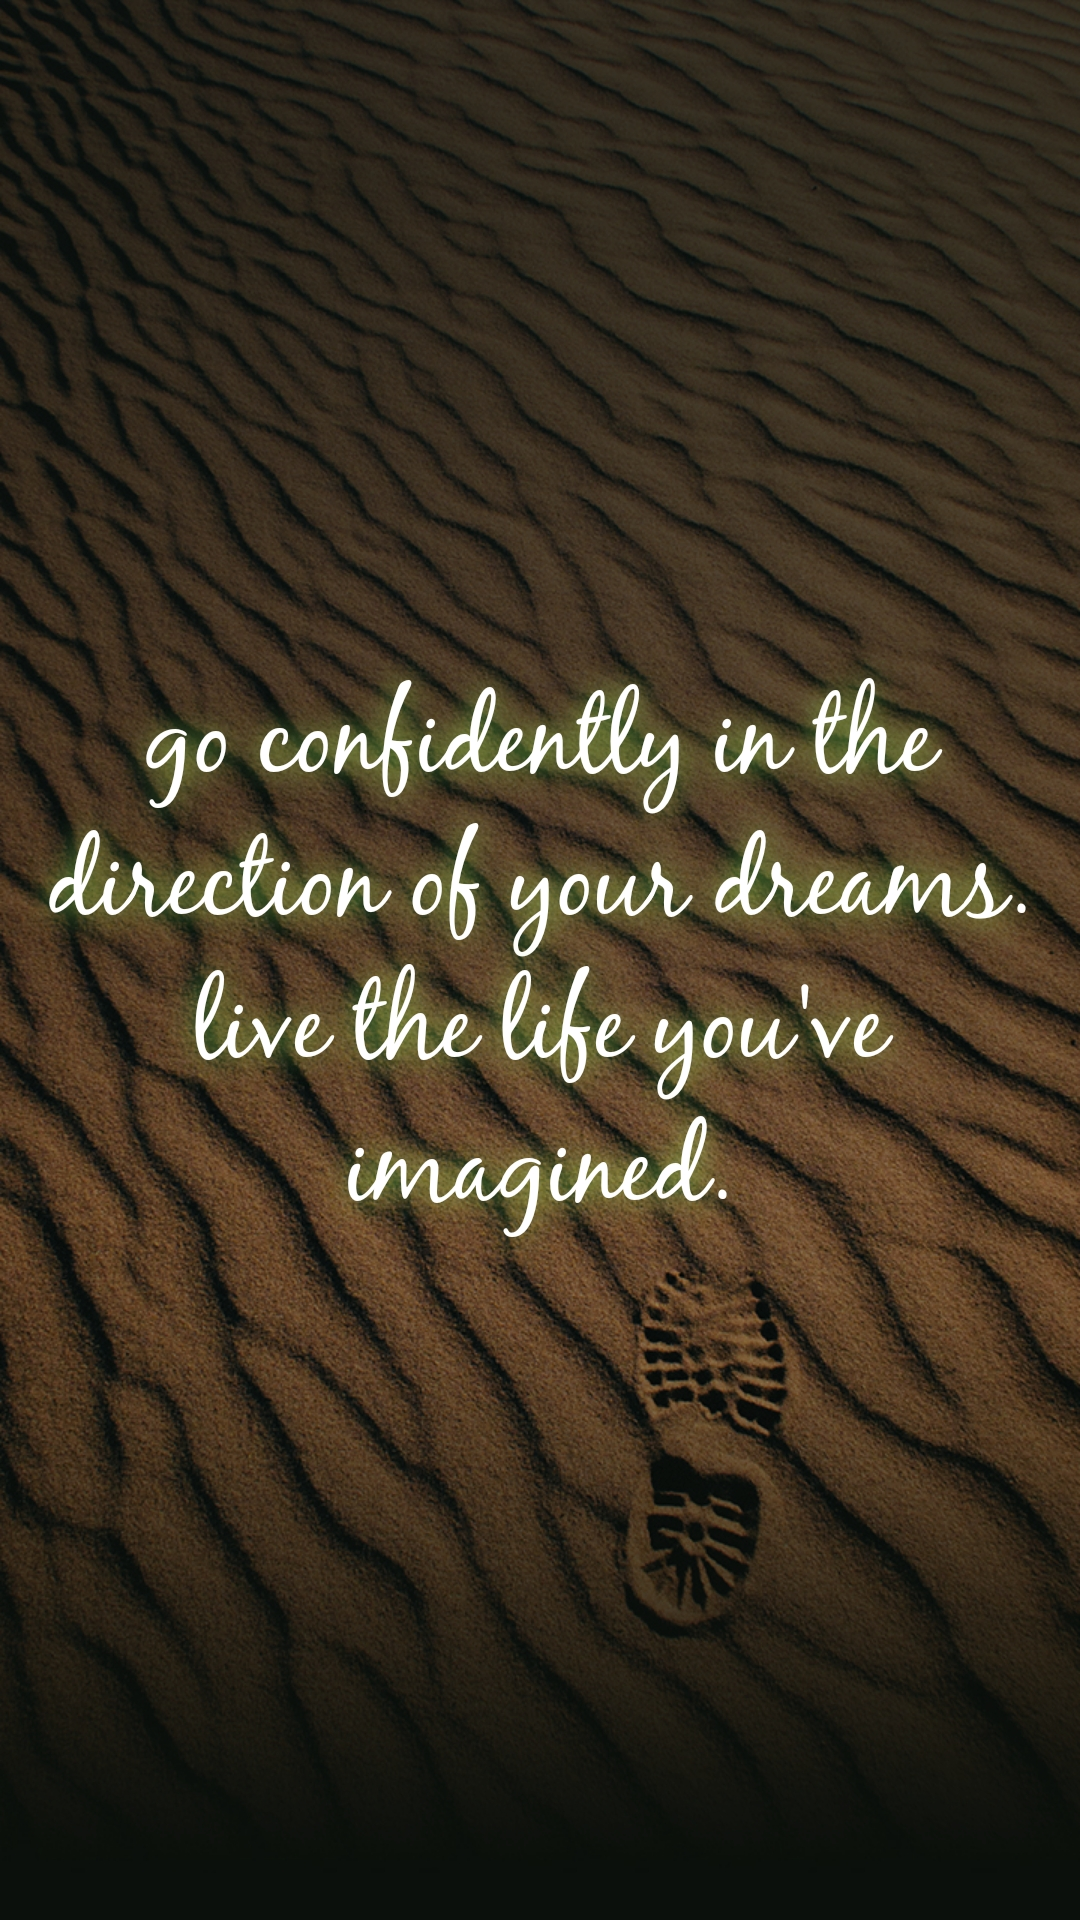 go confidently in the direction of your dreams. live the life you've imagined.